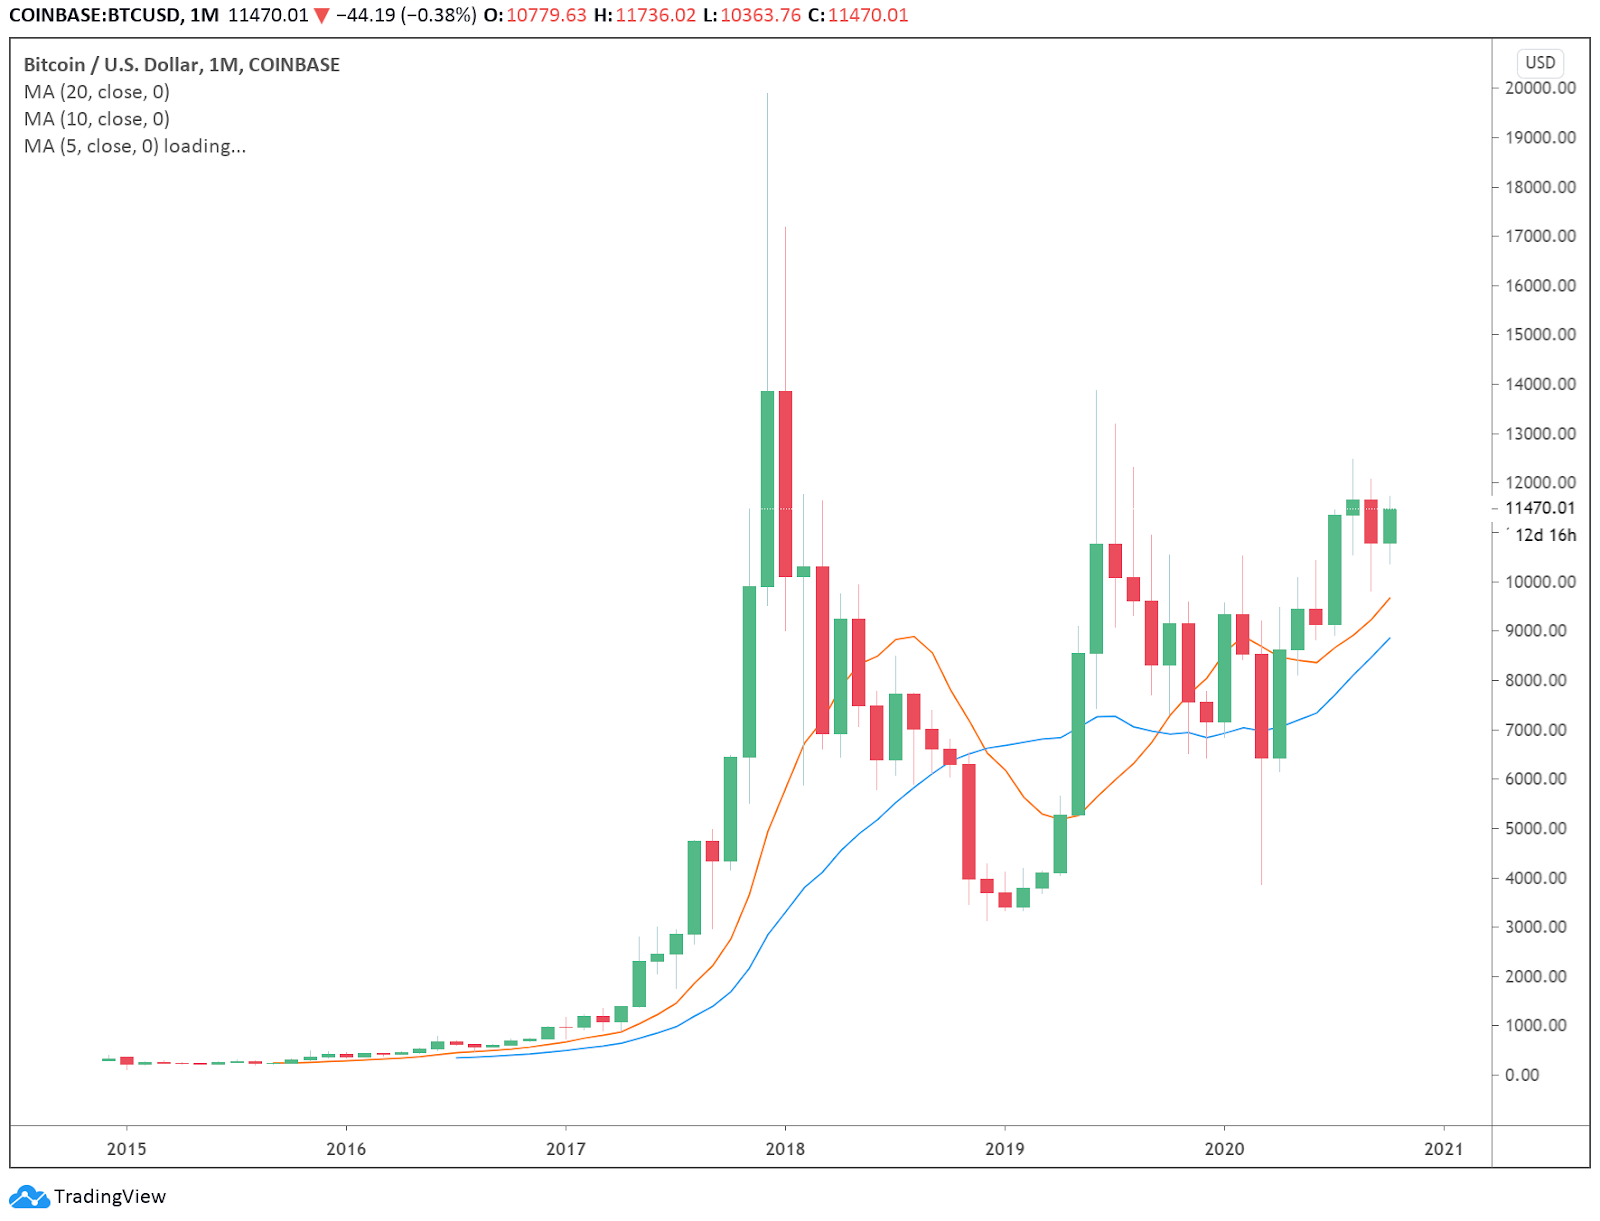 The monthly price chart of Bitcoin